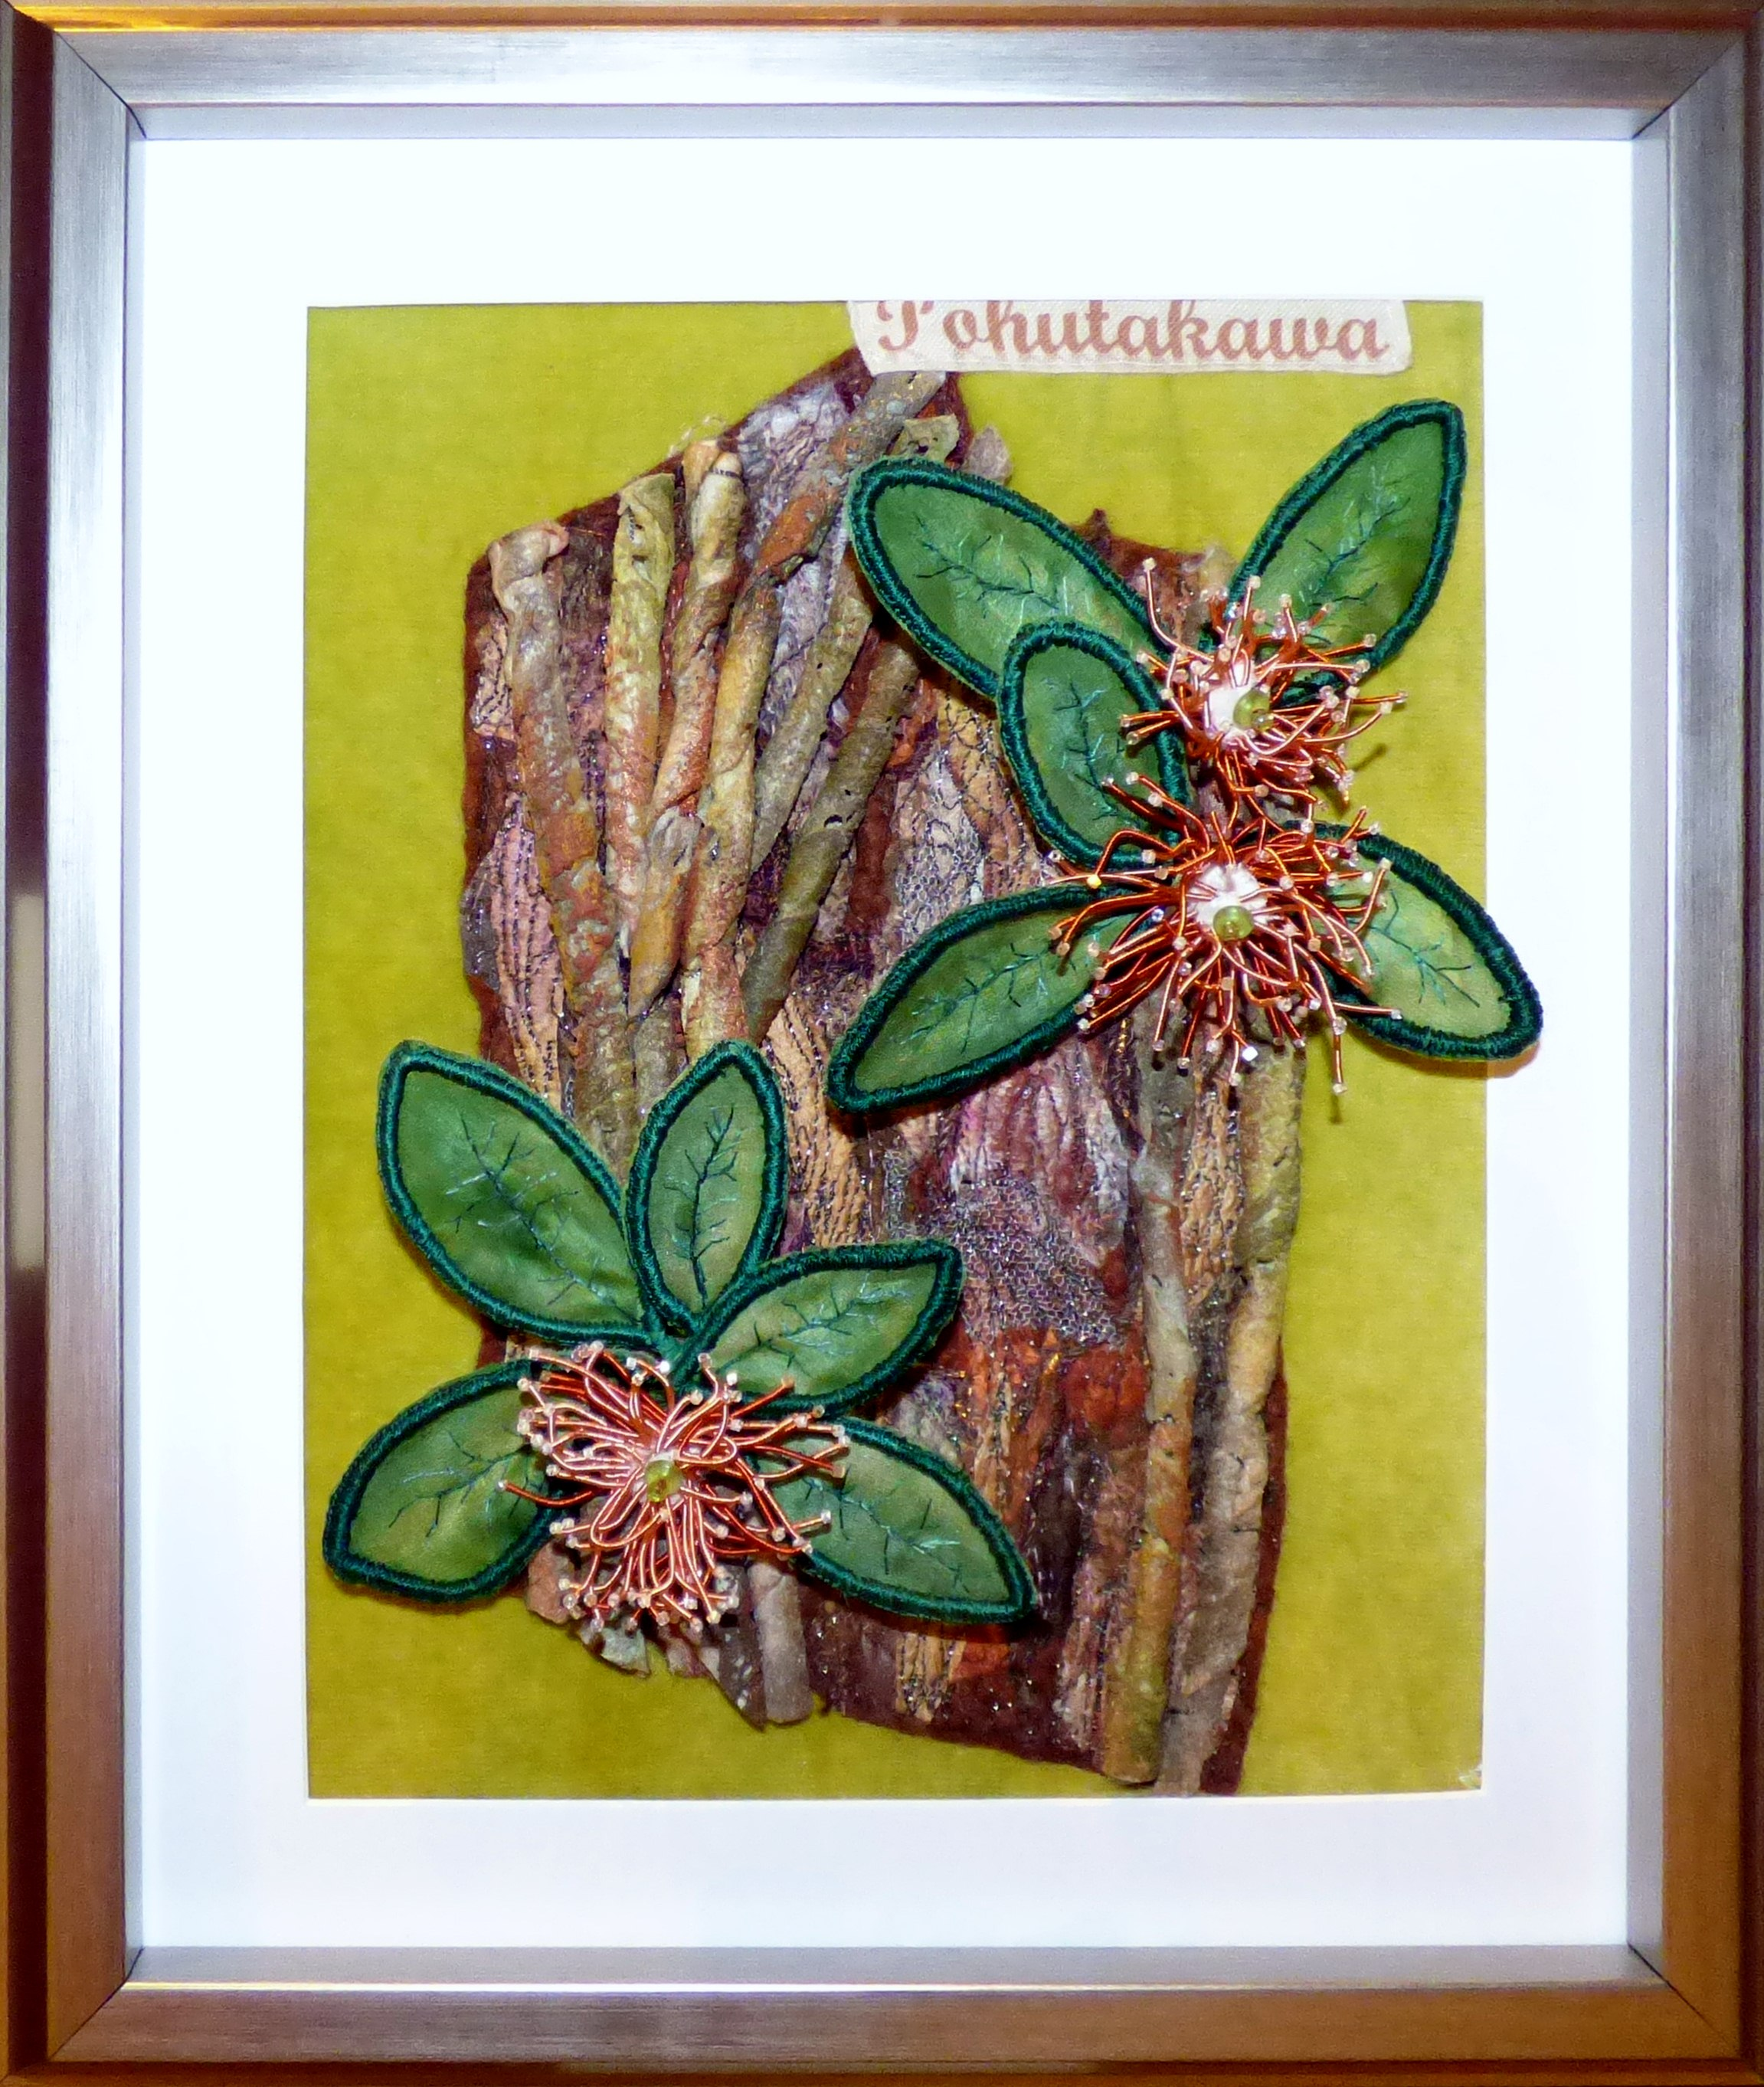 POHUTUKAWA FLOWER by Mal Ralston, mixed media,  Endeavour exhibition, Liverpool Cathedral, Sept 2018